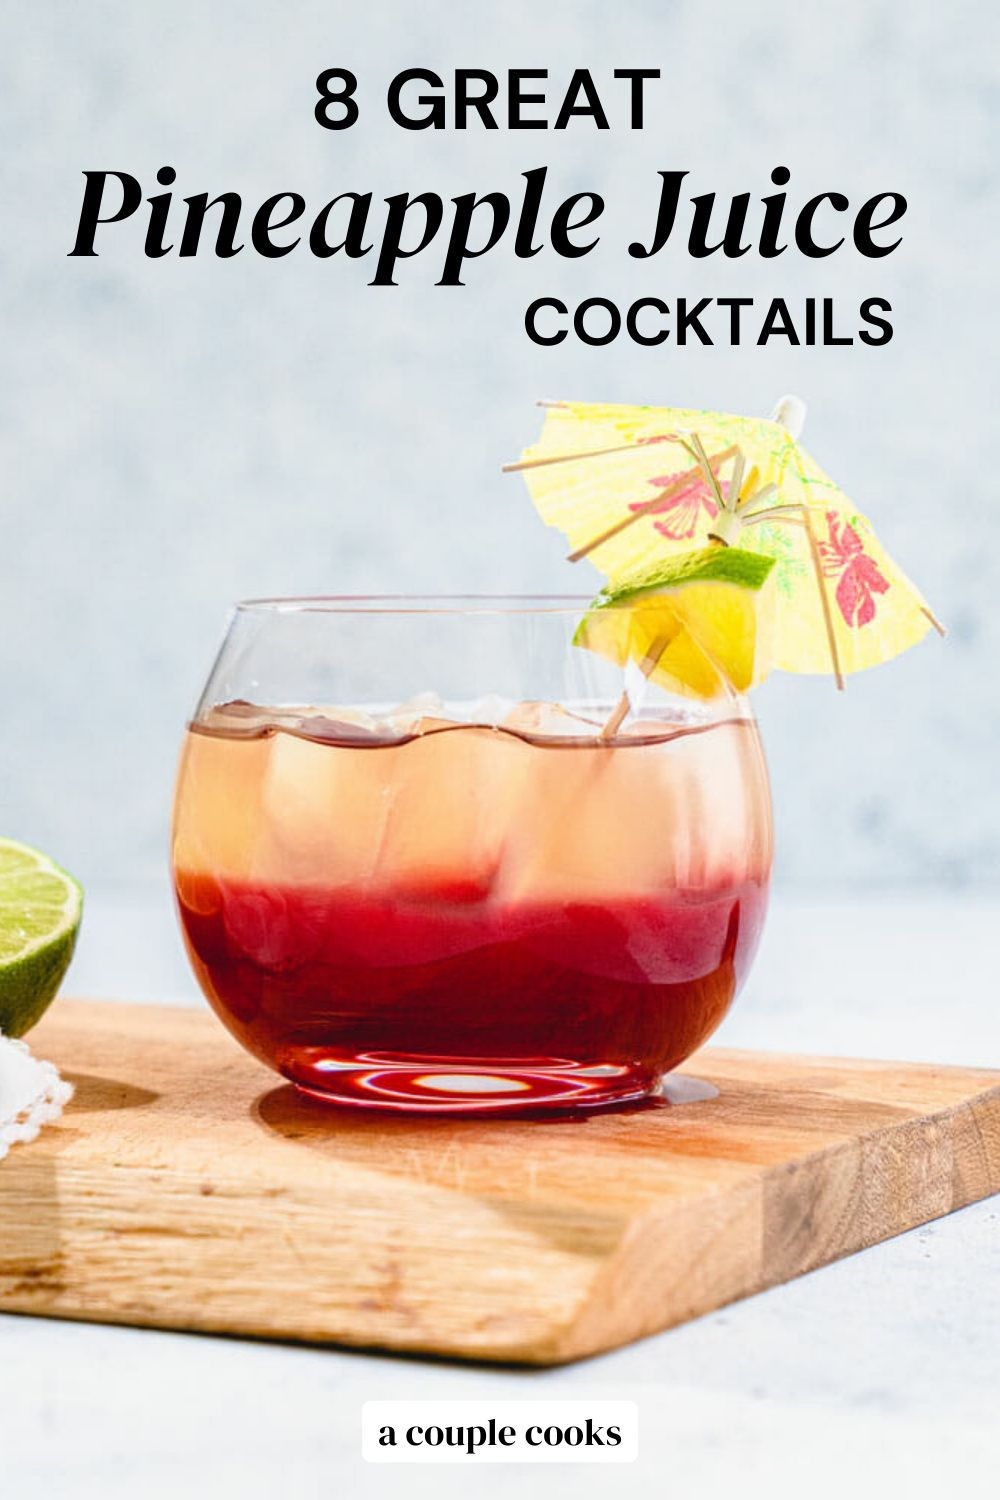 10 Great Pineapple Juice Cocktails A Couple Cooks Recipe Pineapple Cocktail Recipes Pineapple Cocktail Cranberry Cocktail Recipe